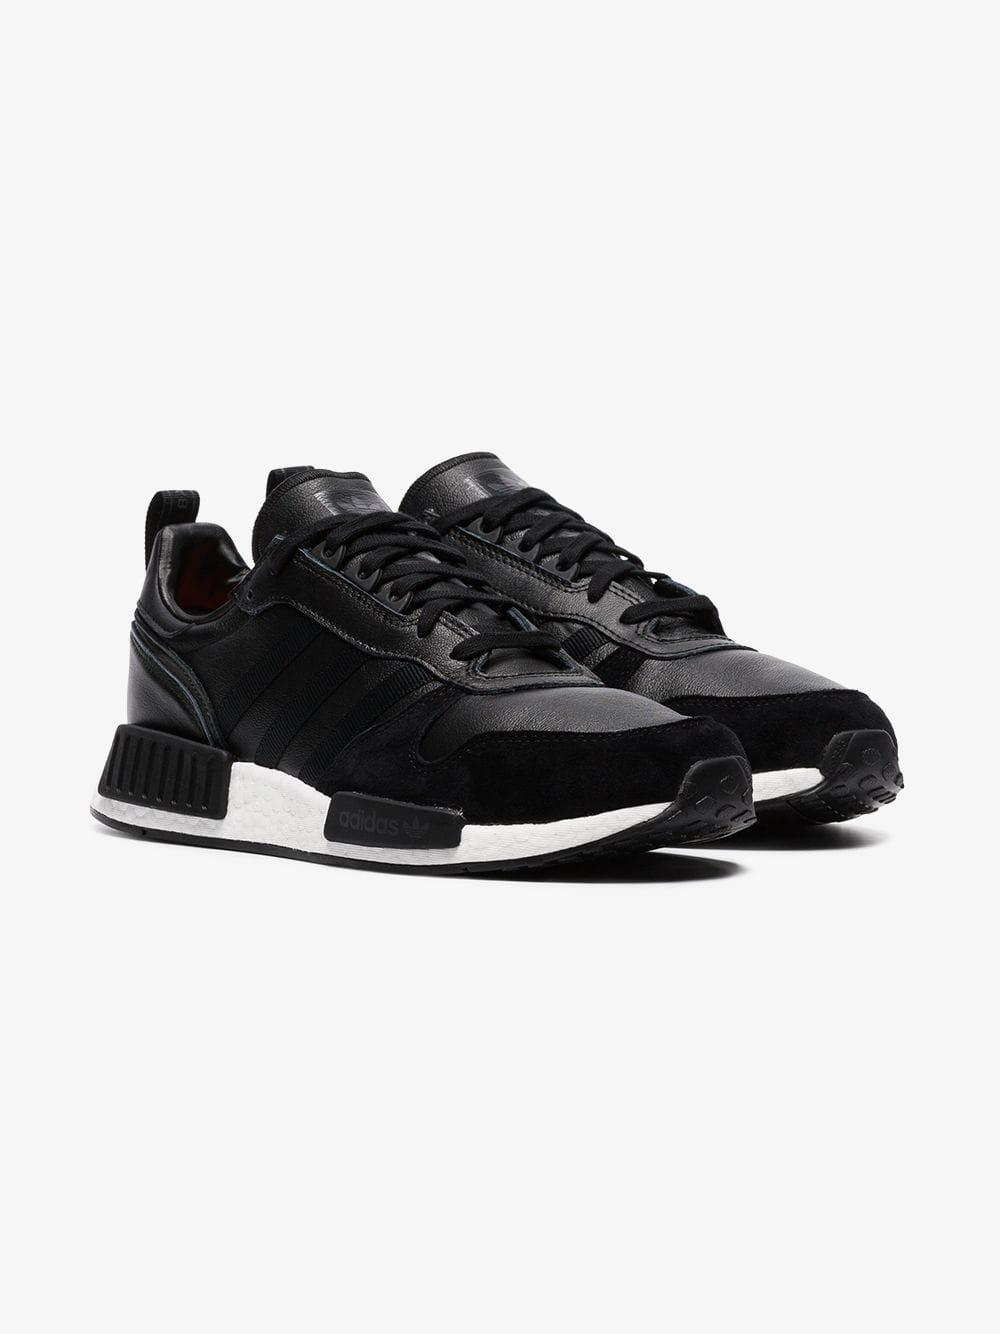 05d980a27729e4 Lyst - adidas Black Rising Star R1 Leather And Suede Sneakers in ...